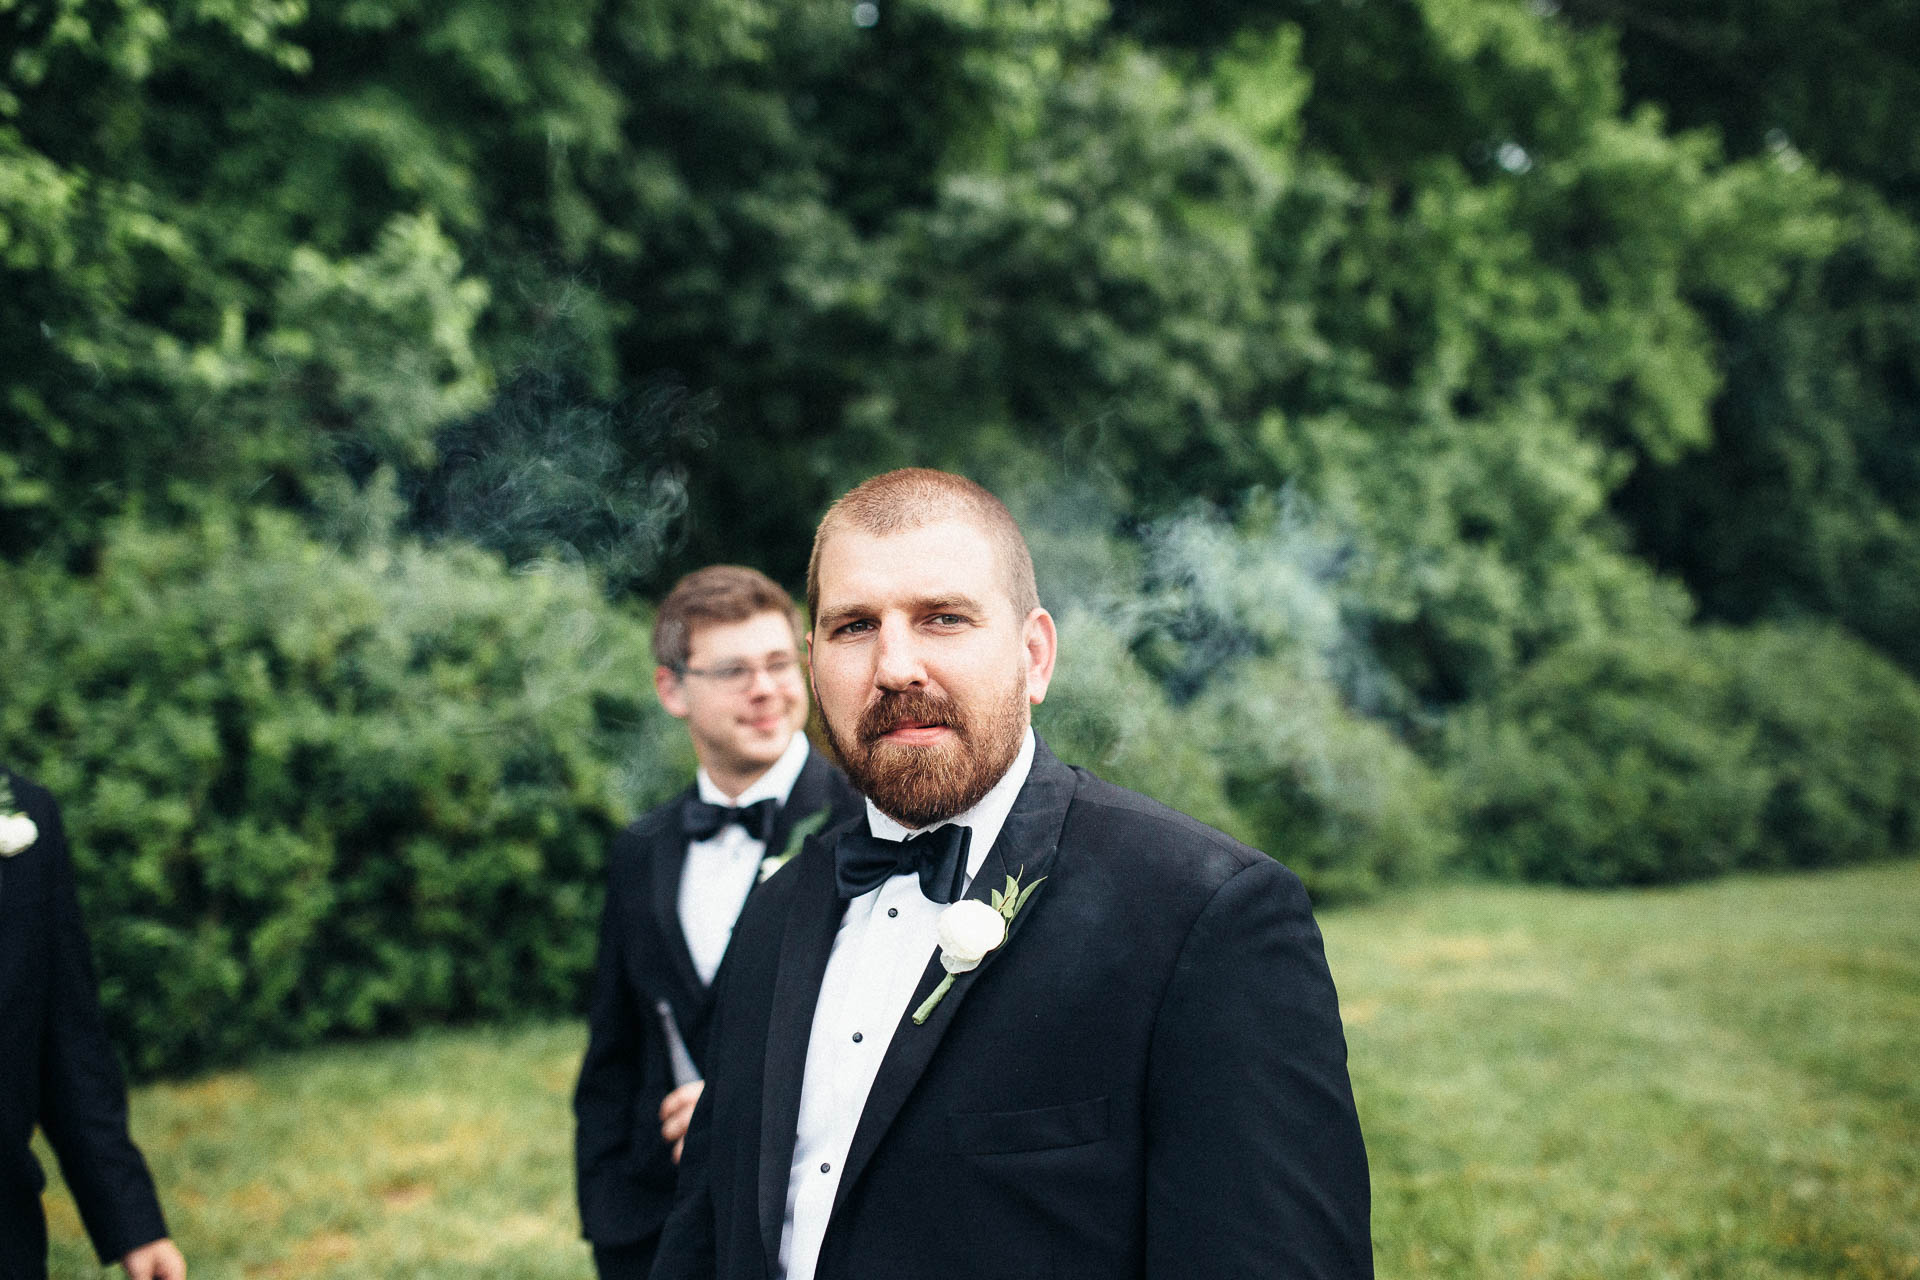 Shawna_Josh_Wedding_Easton_Maryland_JeanLaurentGaudy_099